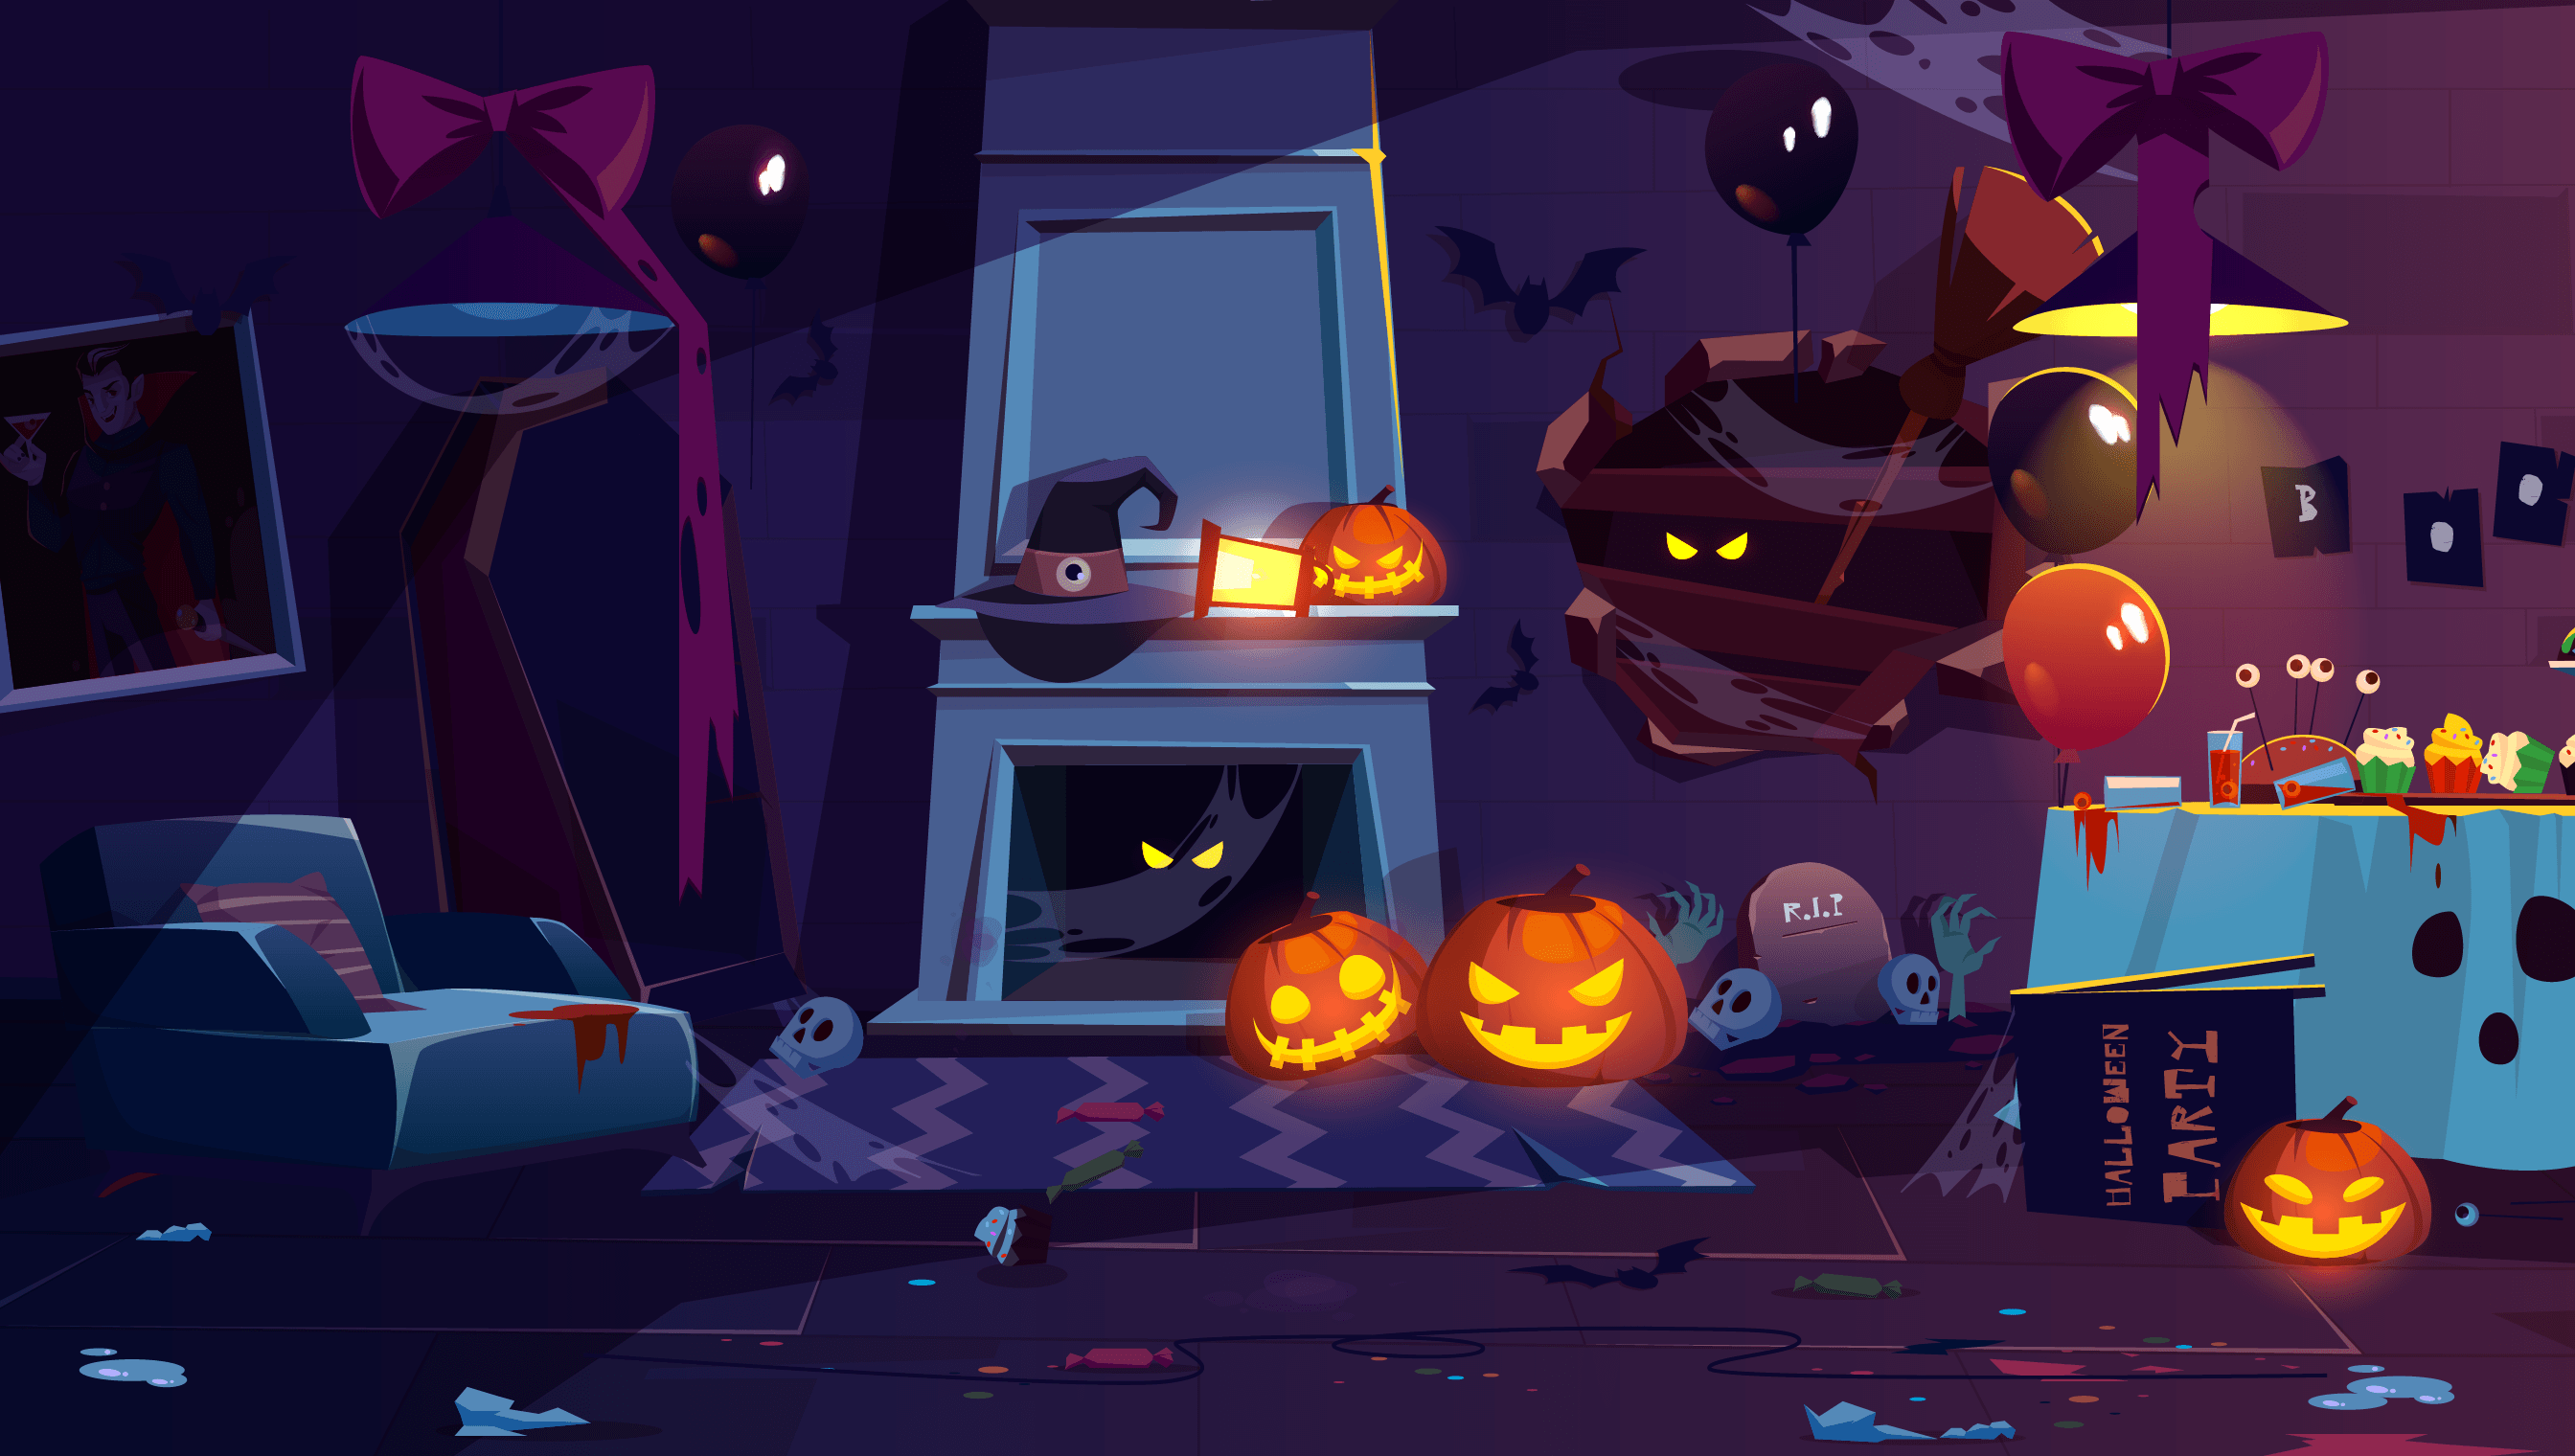 background scene - Halloween 10